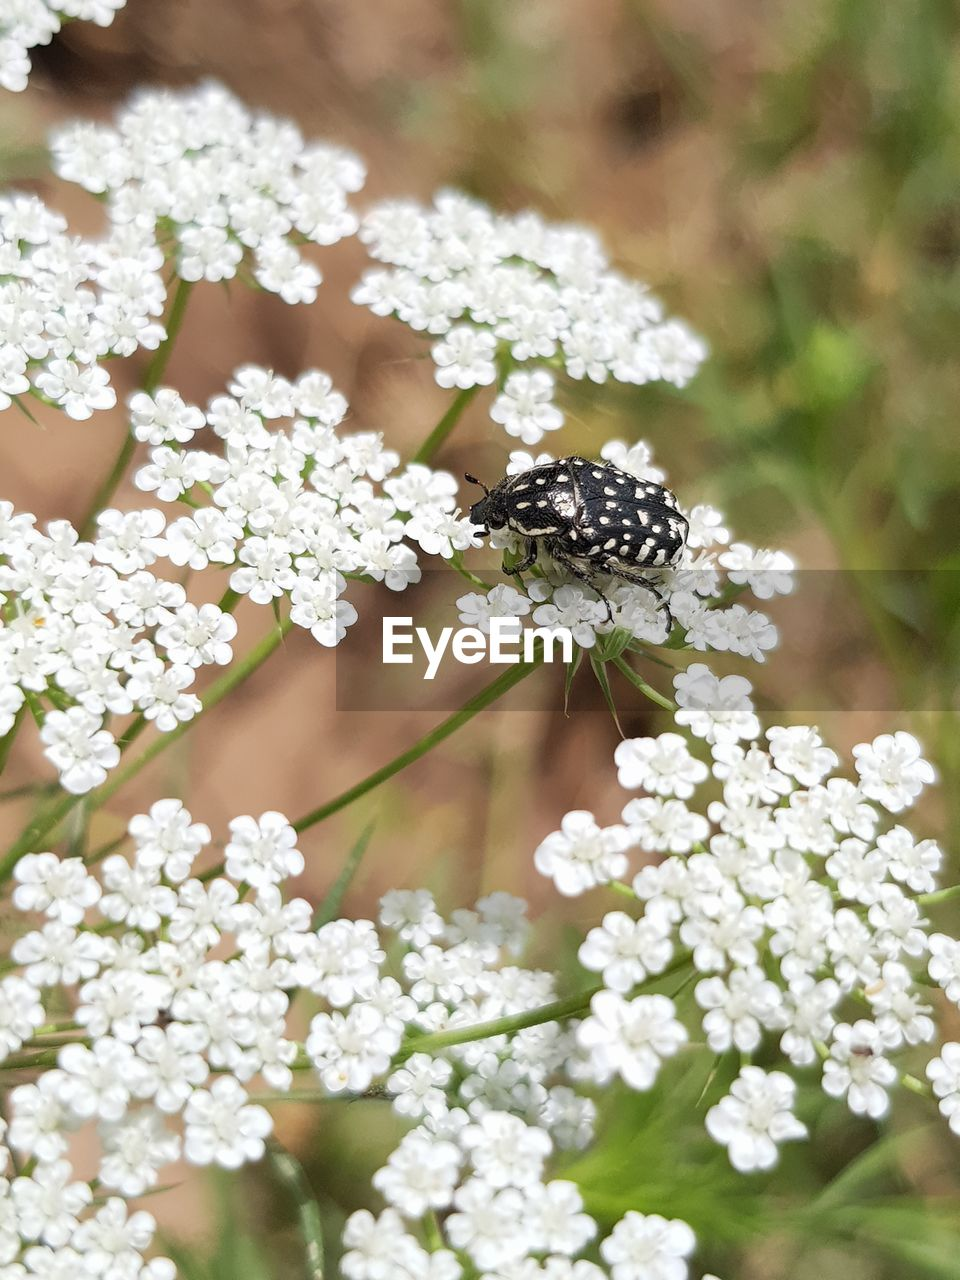 flower, flowering plant, plant, fragility, invertebrate, vulnerability, freshness, animal themes, insect, animal, white color, one animal, growth, beauty in nature, animals in the wild, animal wildlife, close-up, flower head, petal, day, no people, pollination, outdoors, animal wing